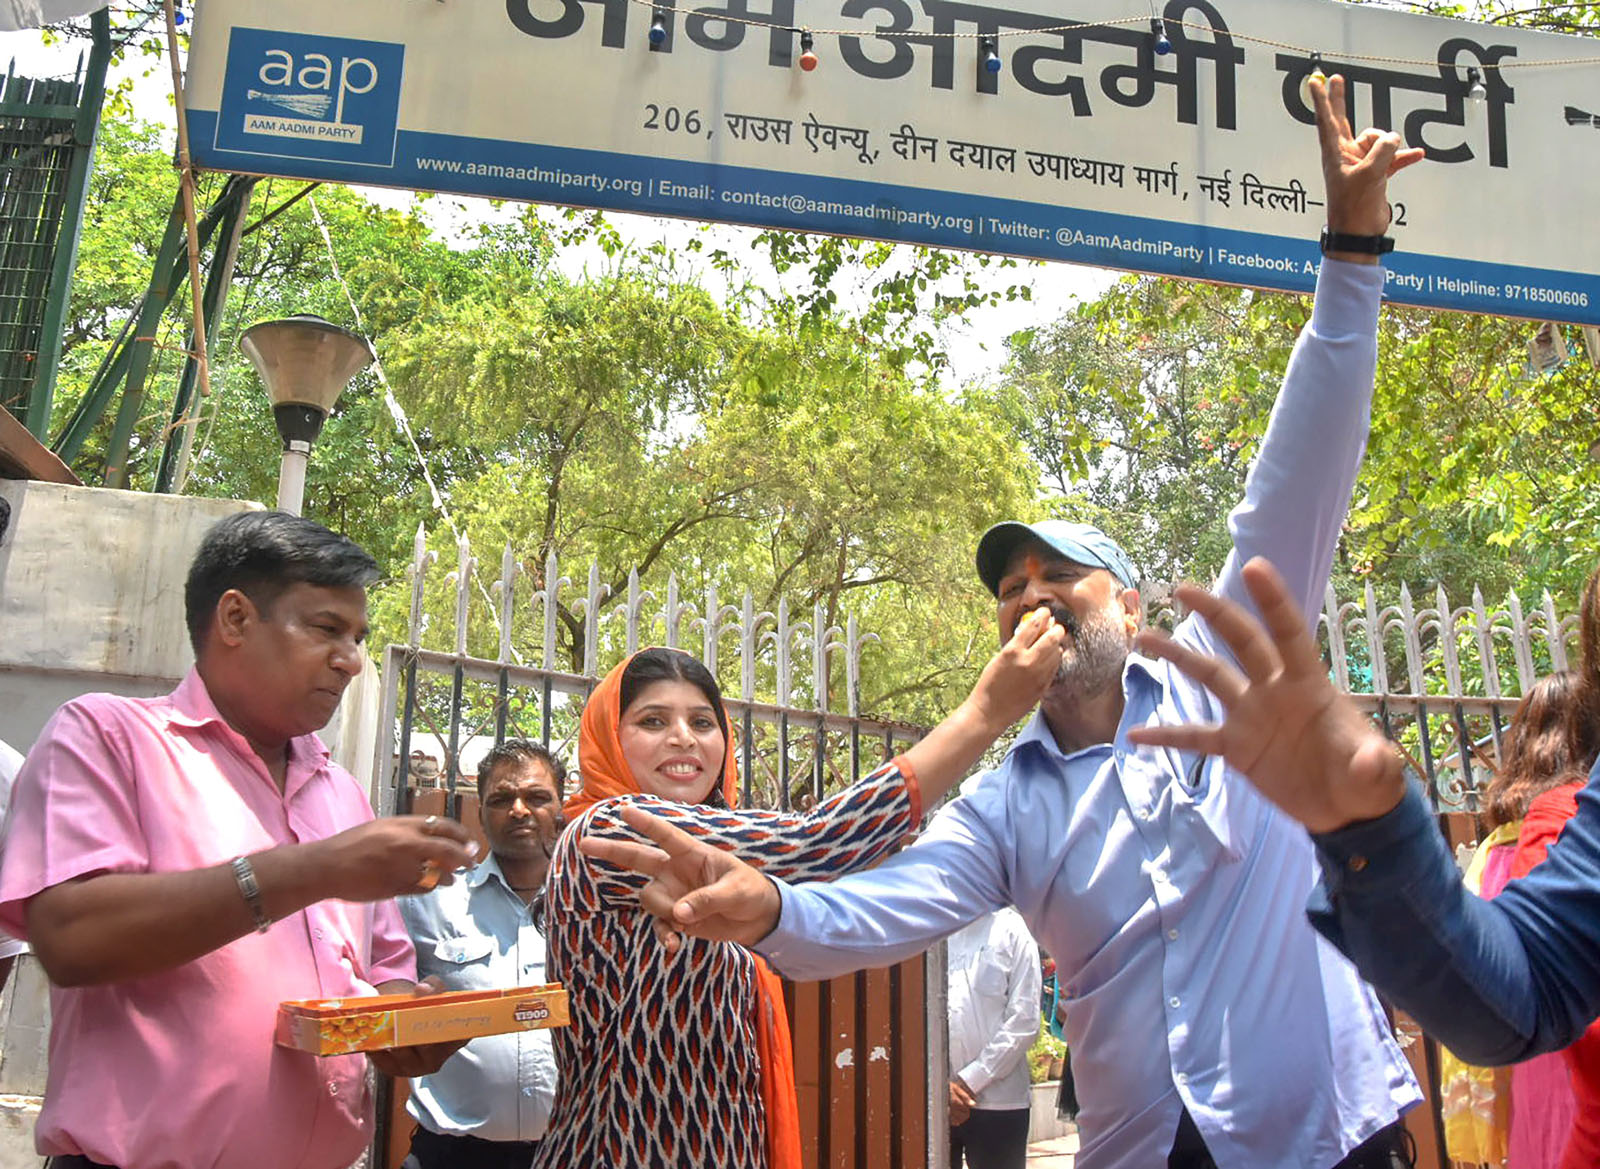 New Delhi: Aam Aadmi Party (AAP) workers celebrate the verdict of Supreme Court on the power tussle between the Delhi government and the Centre decision, outside Party office, in New Delhi on Wednesday, July 04, 2018. (PTI Photo)(PTI7_4_2018_000068B) *** Local Caption ***